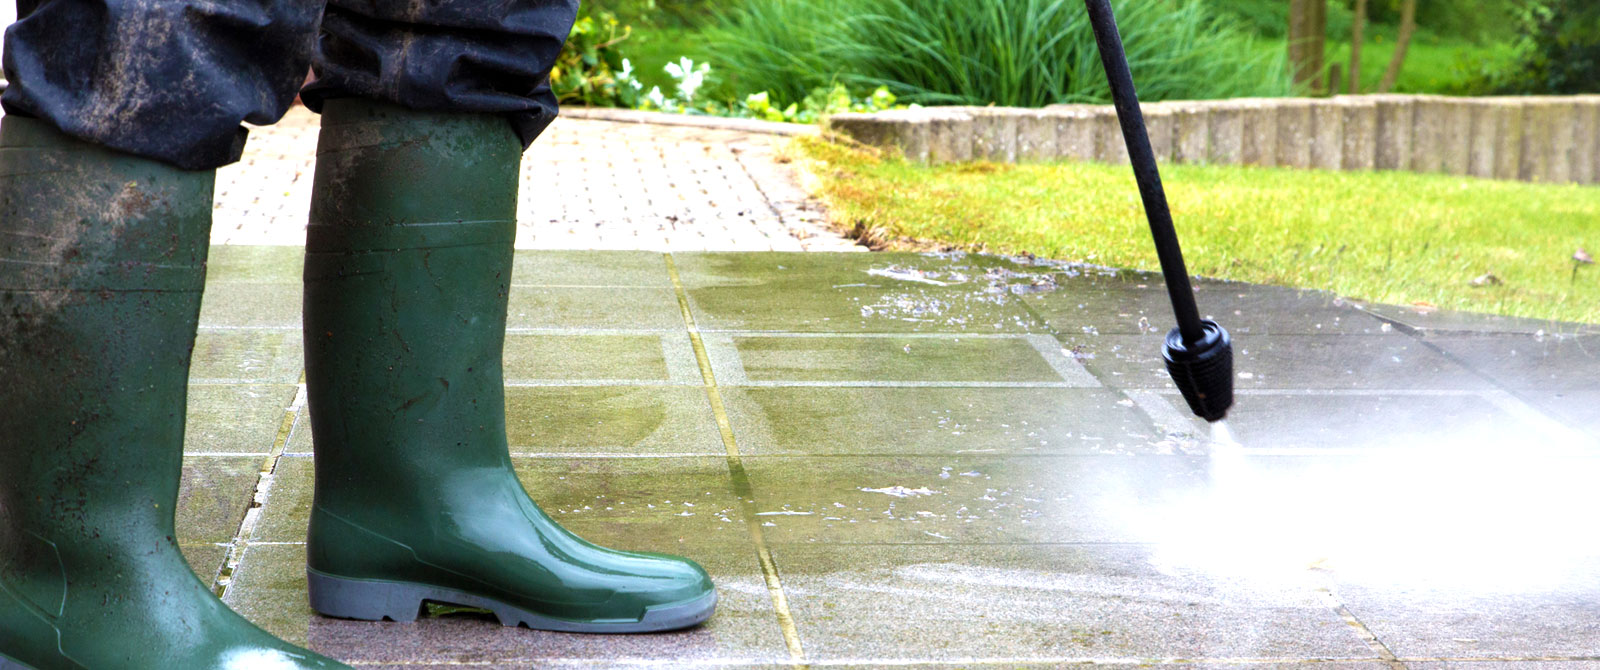 Drainage Cleaning Services In Sri Lanka